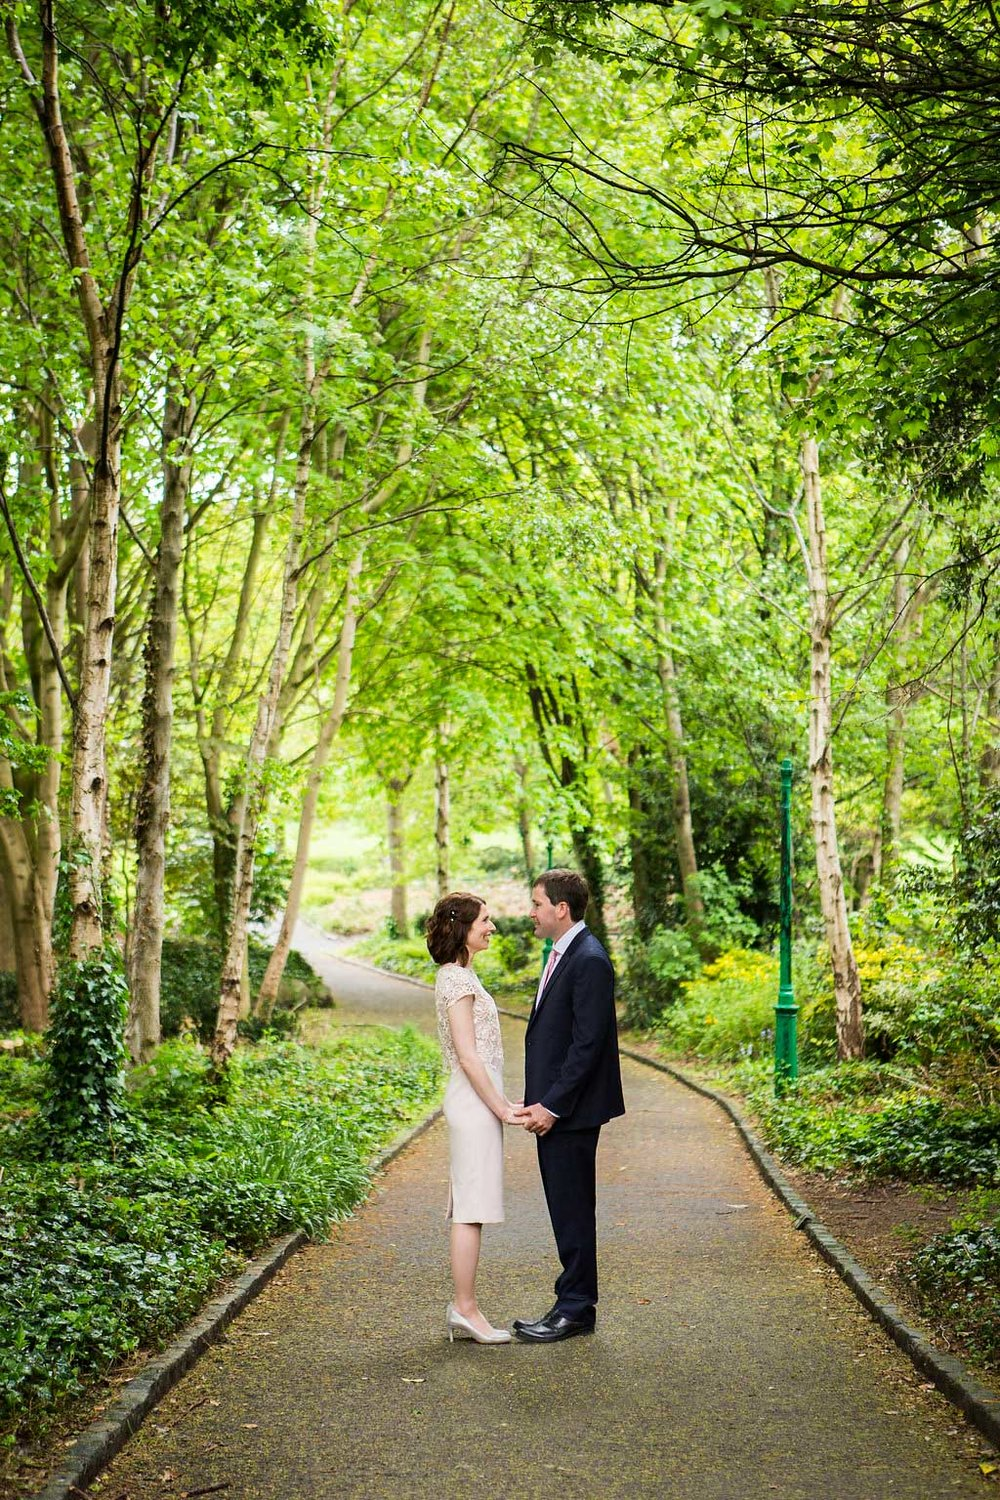 Intimate civil ceremony Dublin Merrion Square  15.jpg